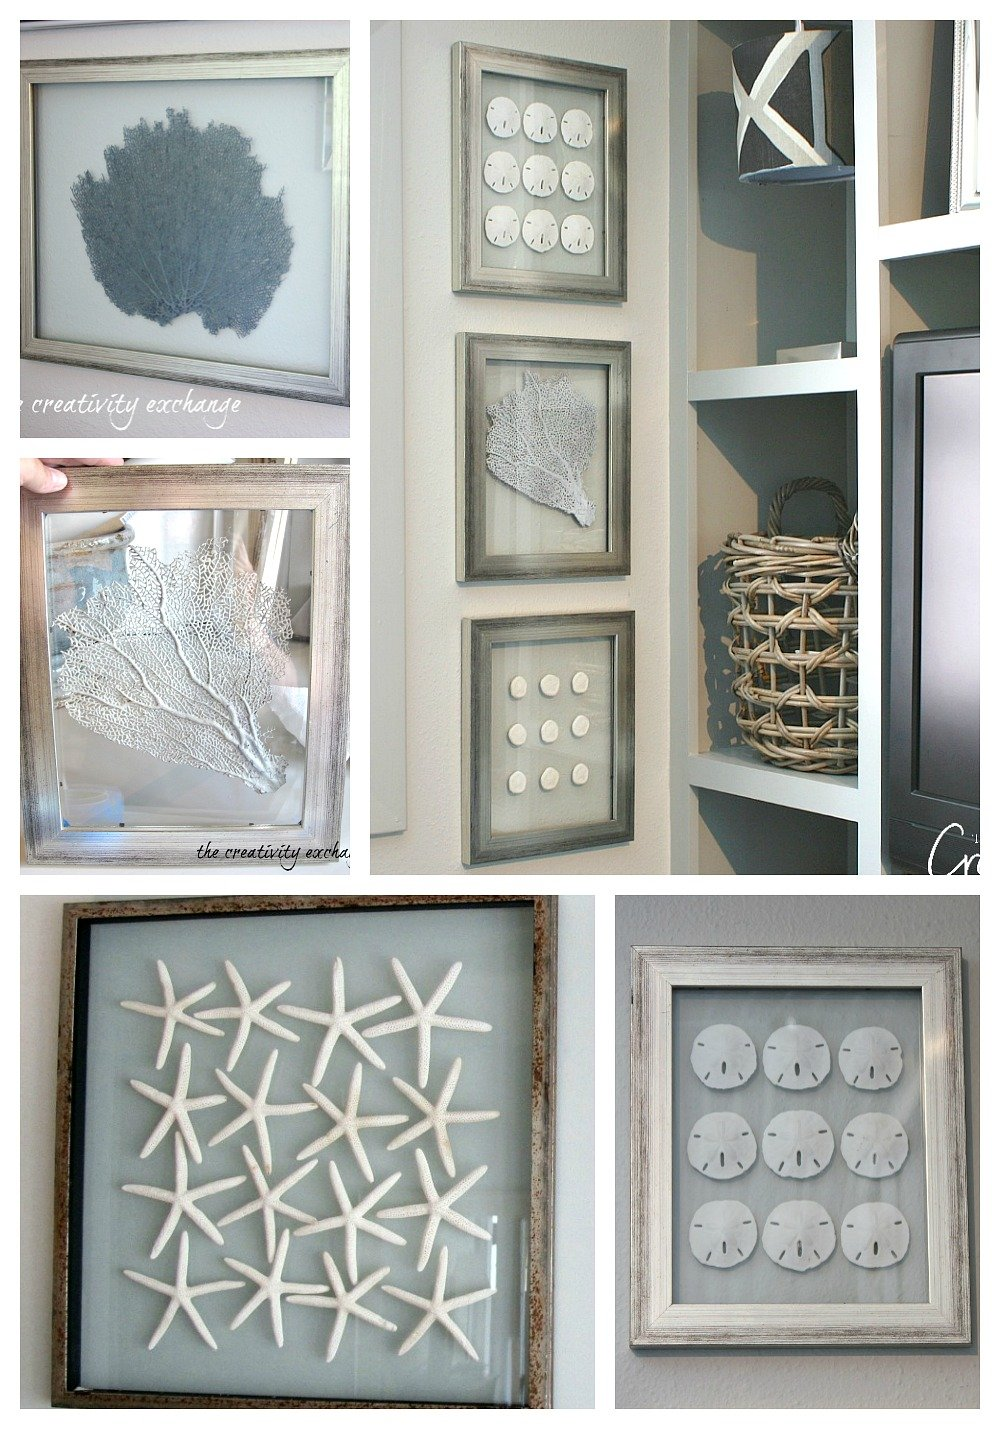 Framing sea fans, sand dollars and shells in double sided framed glass.